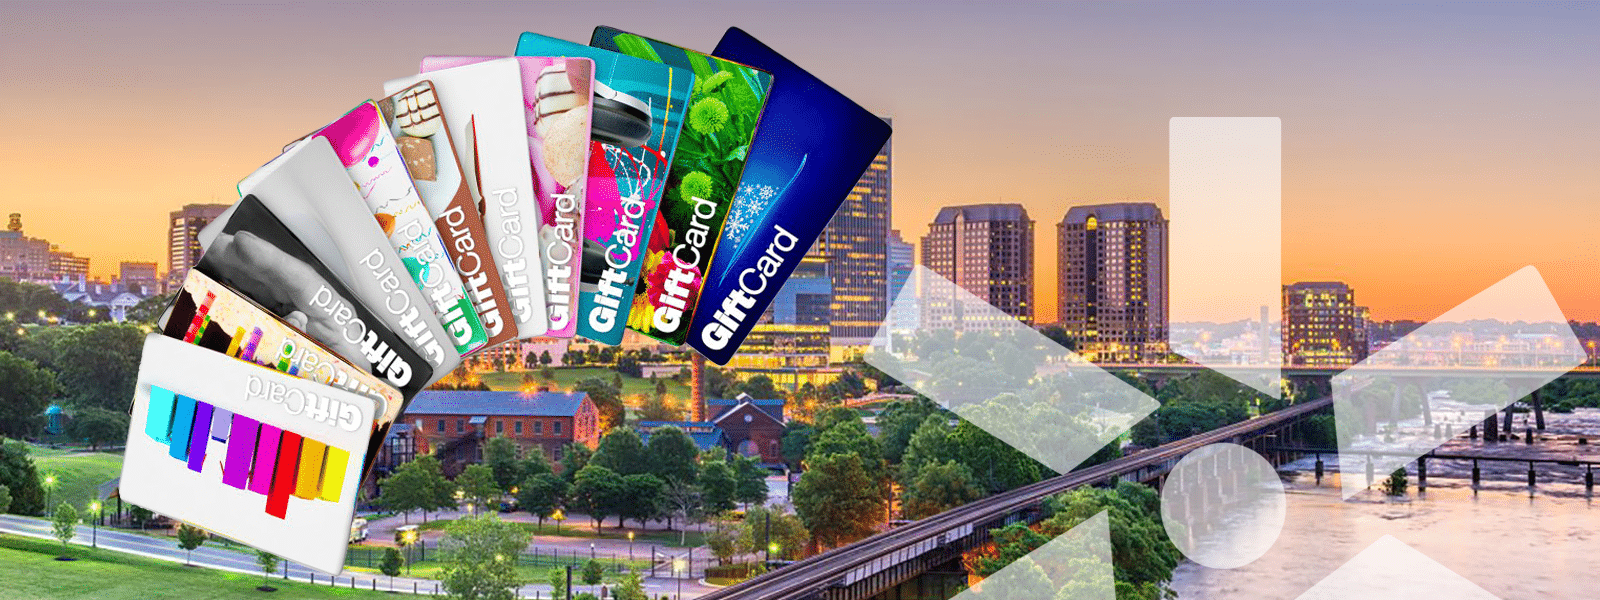 an array of gift cards overlay a Richmond city skyline